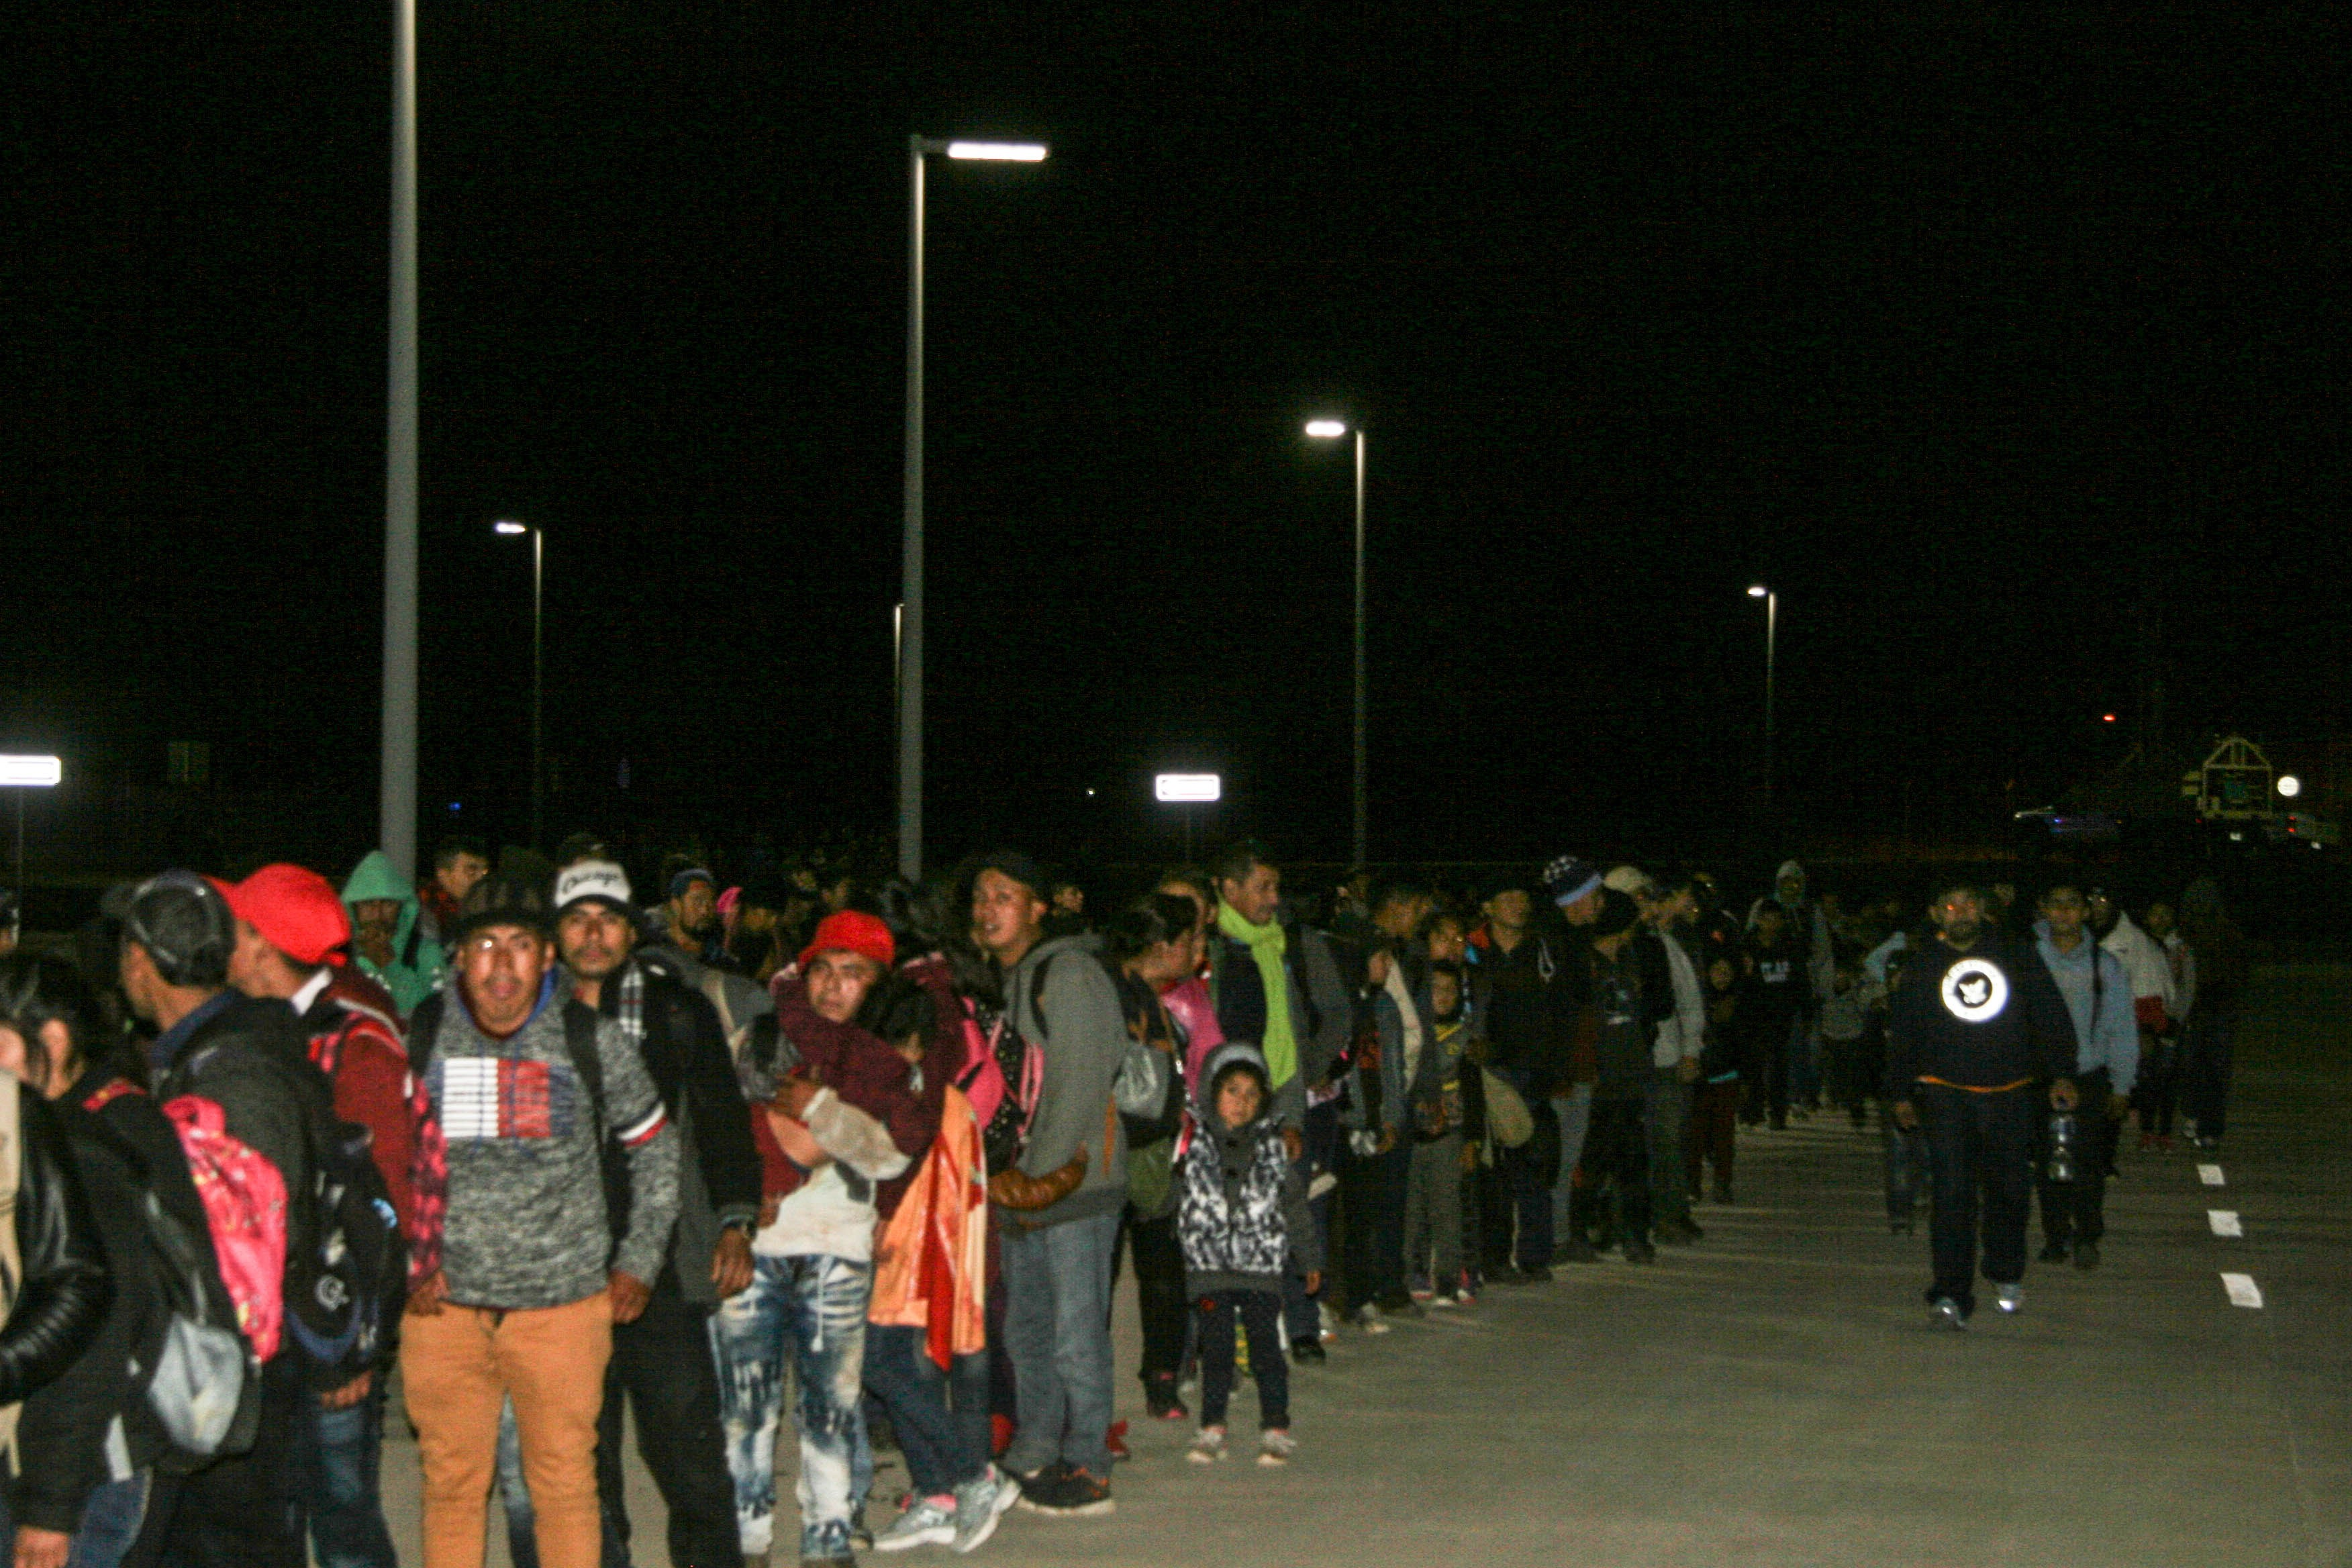 """A large group of migrants, who arrived as part of the """"Conveyor Belt"""" described in U.S. documents, waits near the Antelope Wells Port of Entry in Hidalgo County, N.M. (Obtained by The Washington Post)"""